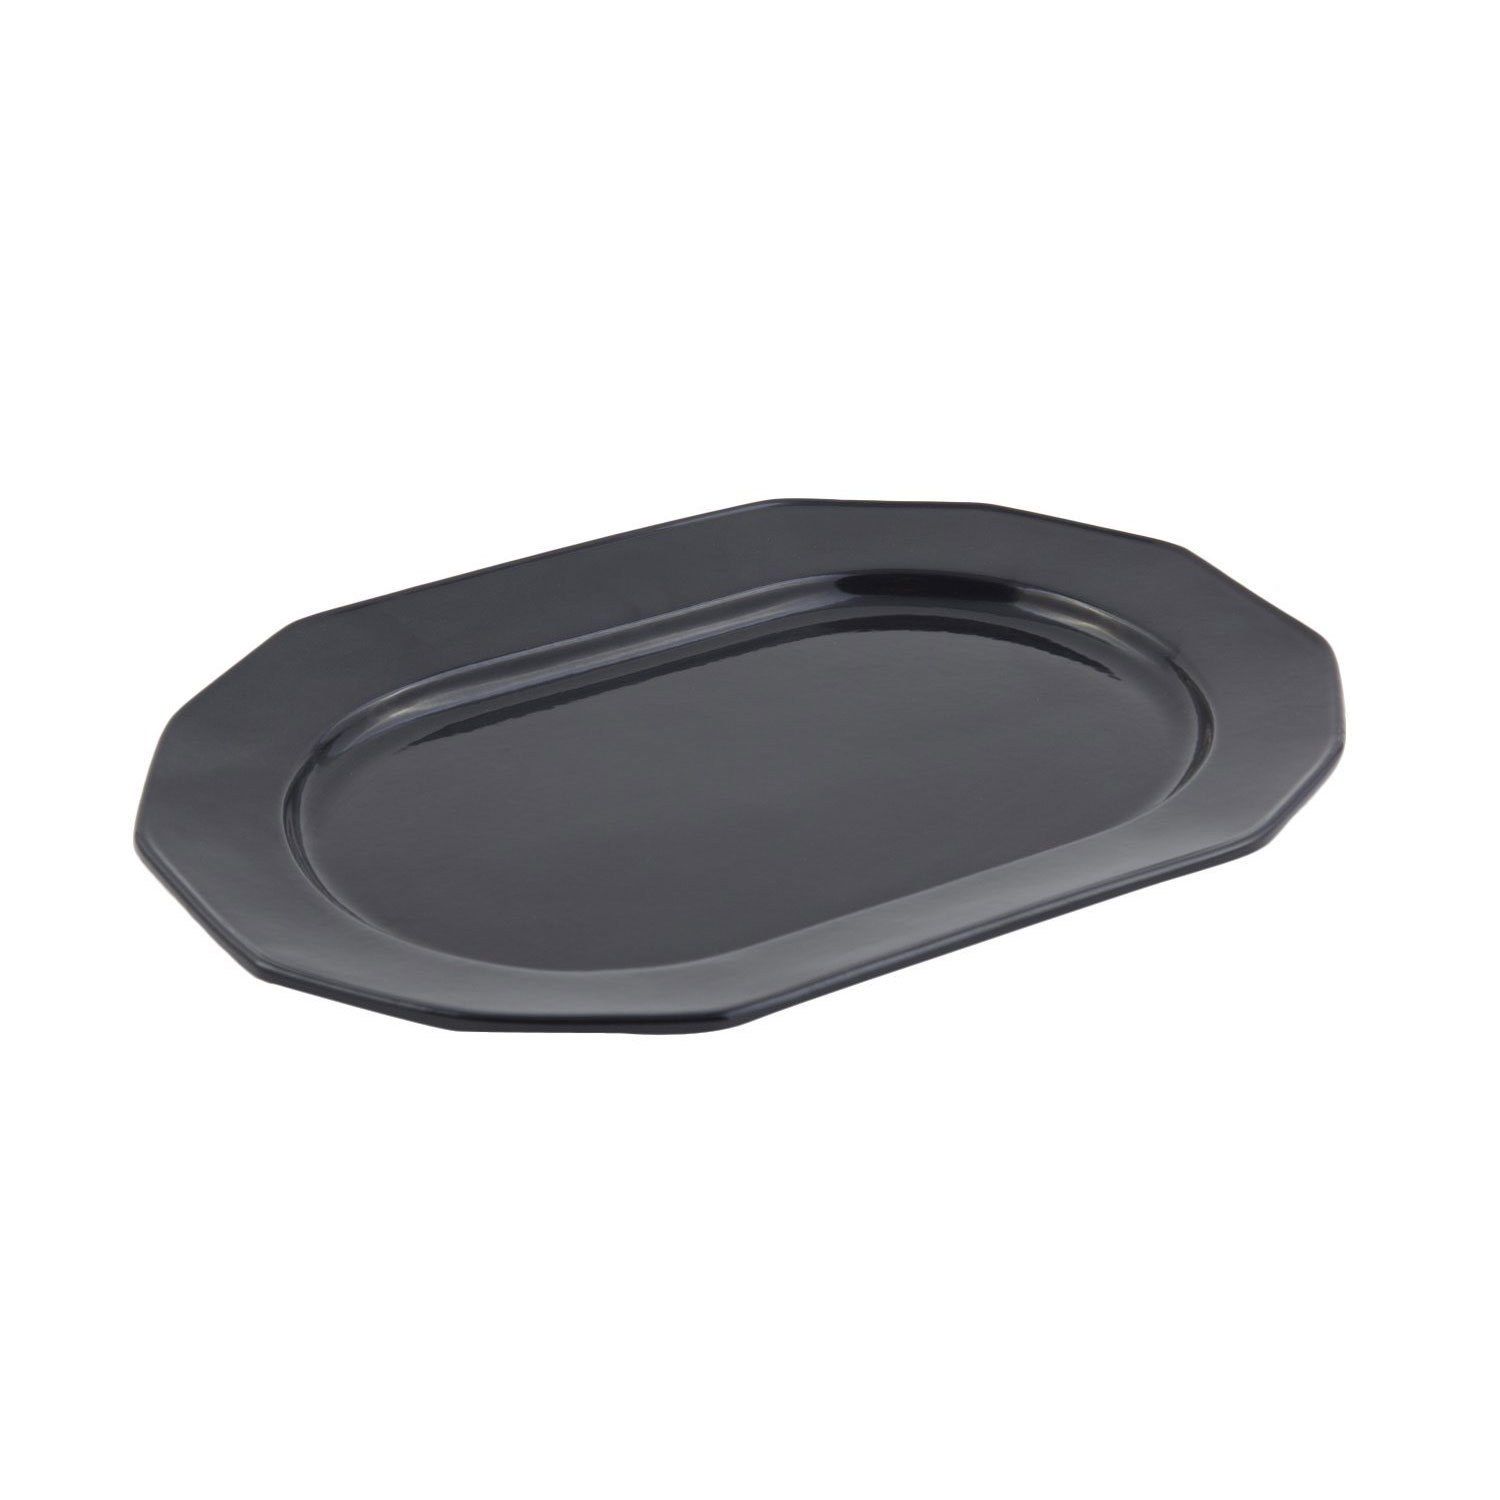 9 7/8 x 14 1/4 inch Prism Tray Sandstone Black Speckled